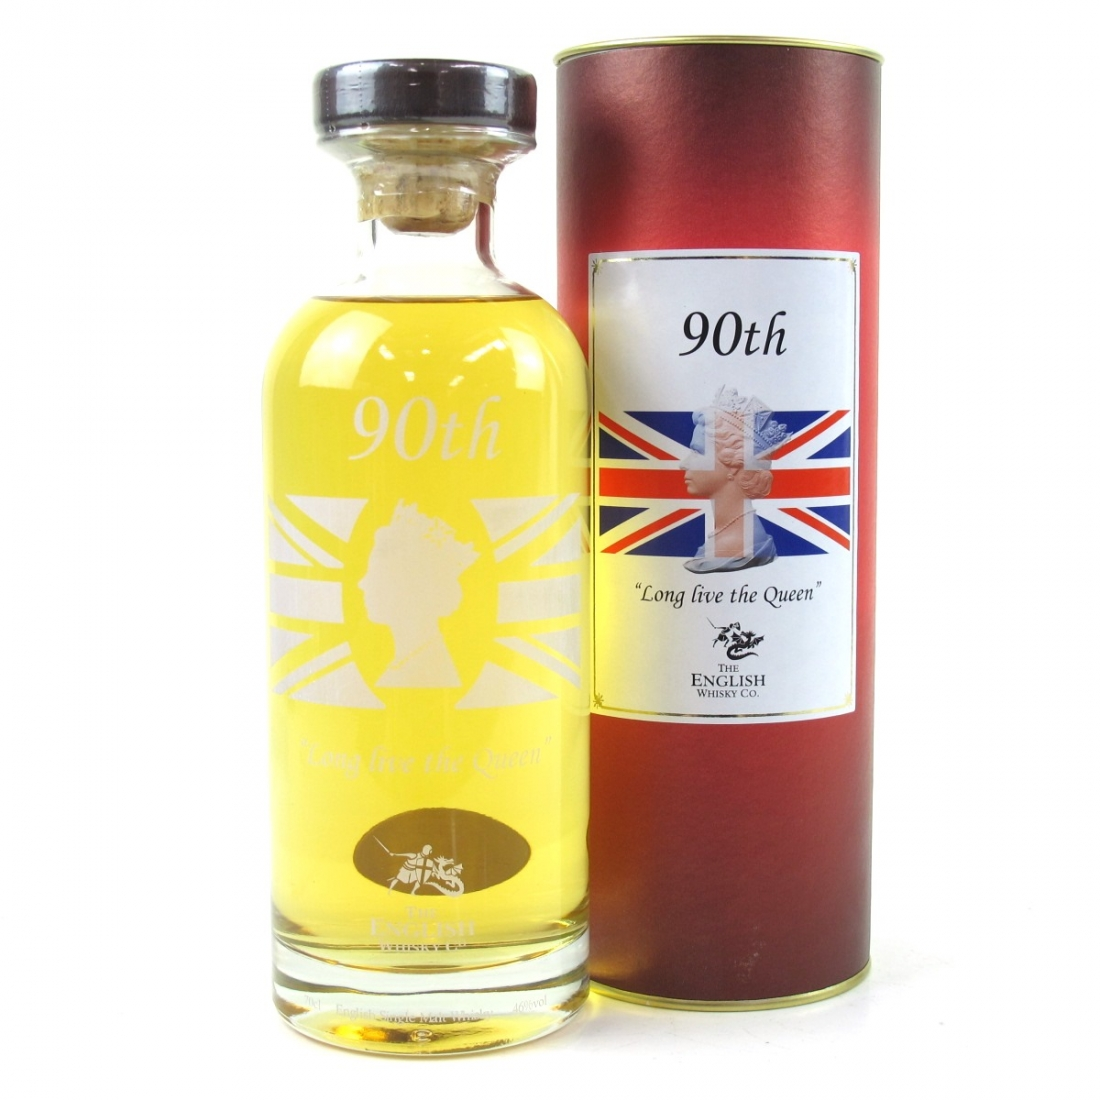 English Whisky Co 90th Birthday of Queen Elizabeth II / Long Live The Queen